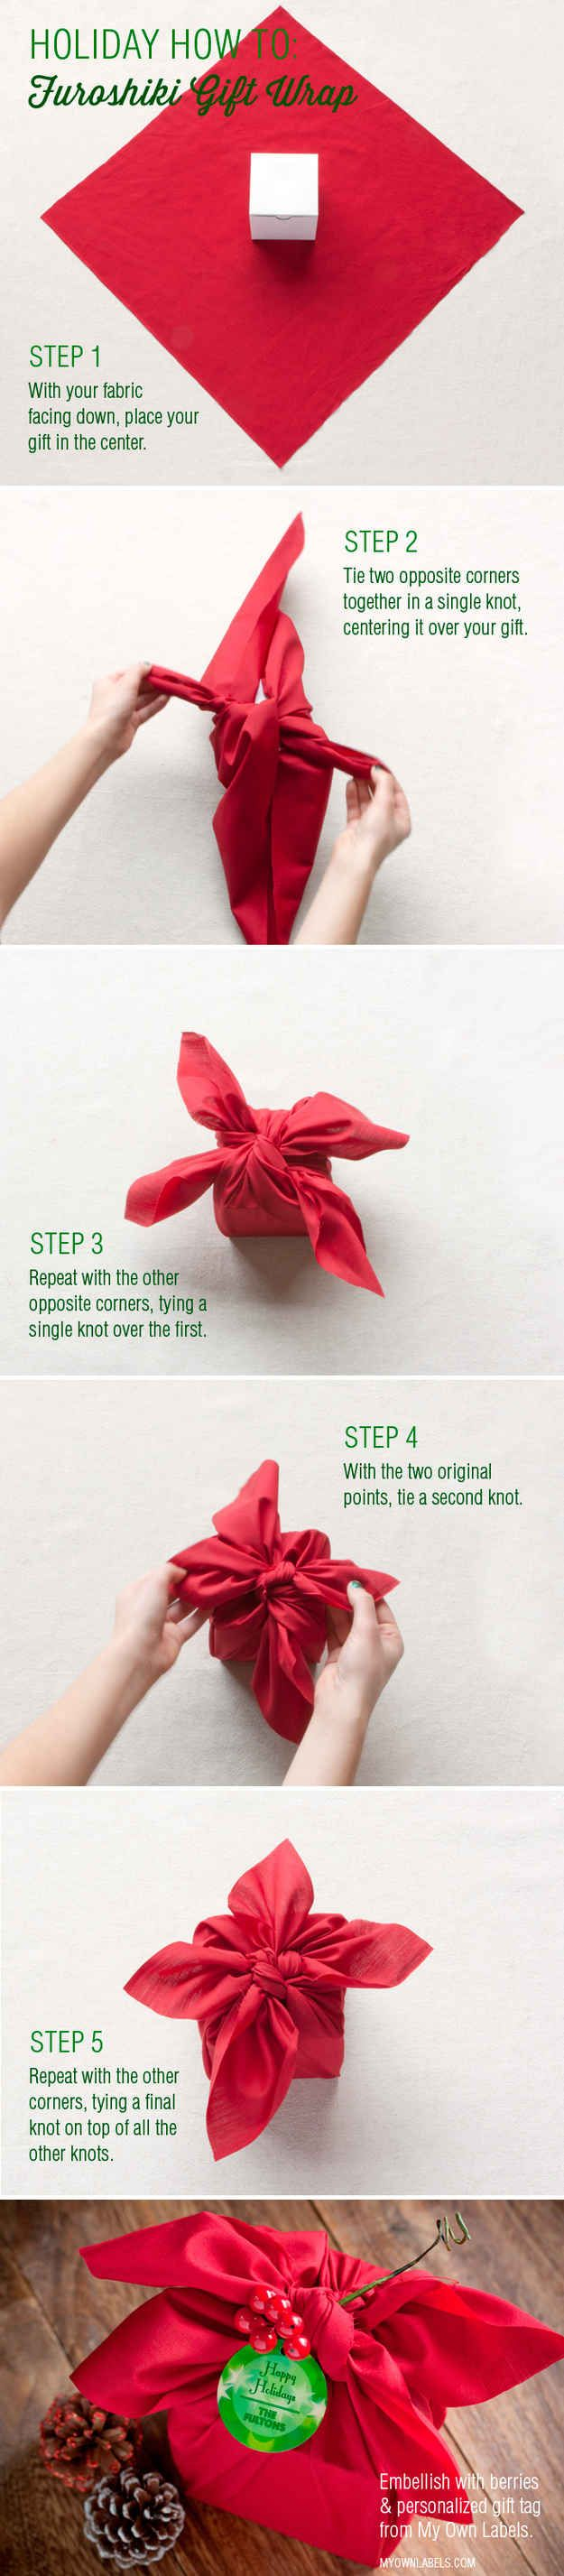 Wrap with fabric.   23 Tricks To Take The Stress Out Of Wrapping Gifts